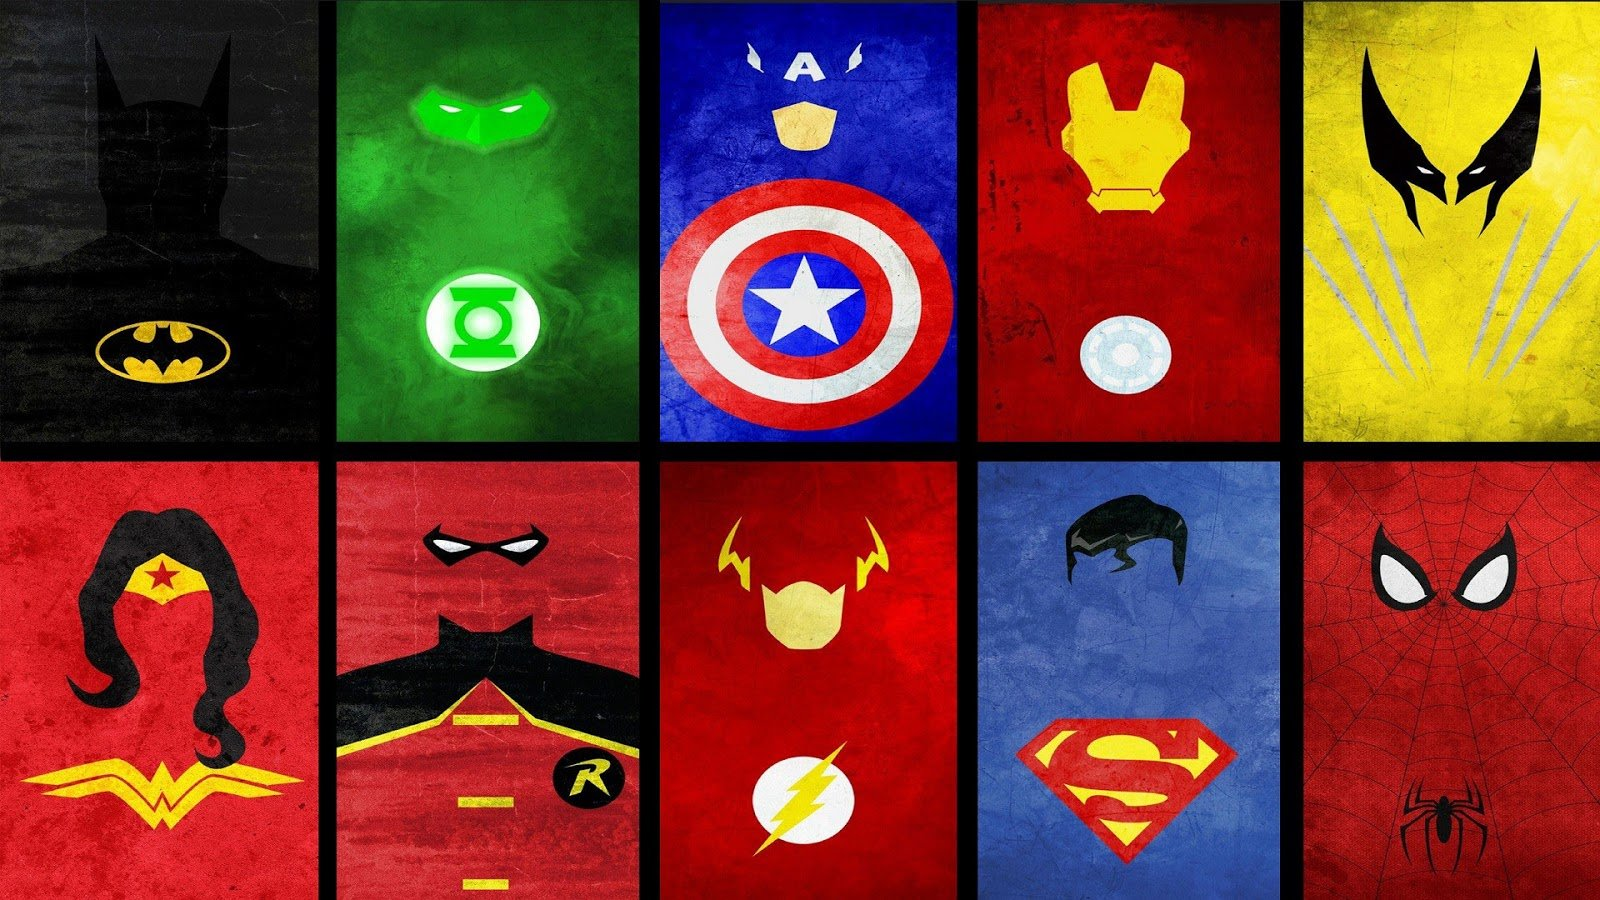 Superheroes Logos Wallpaper Ive no clue where this 1600x900